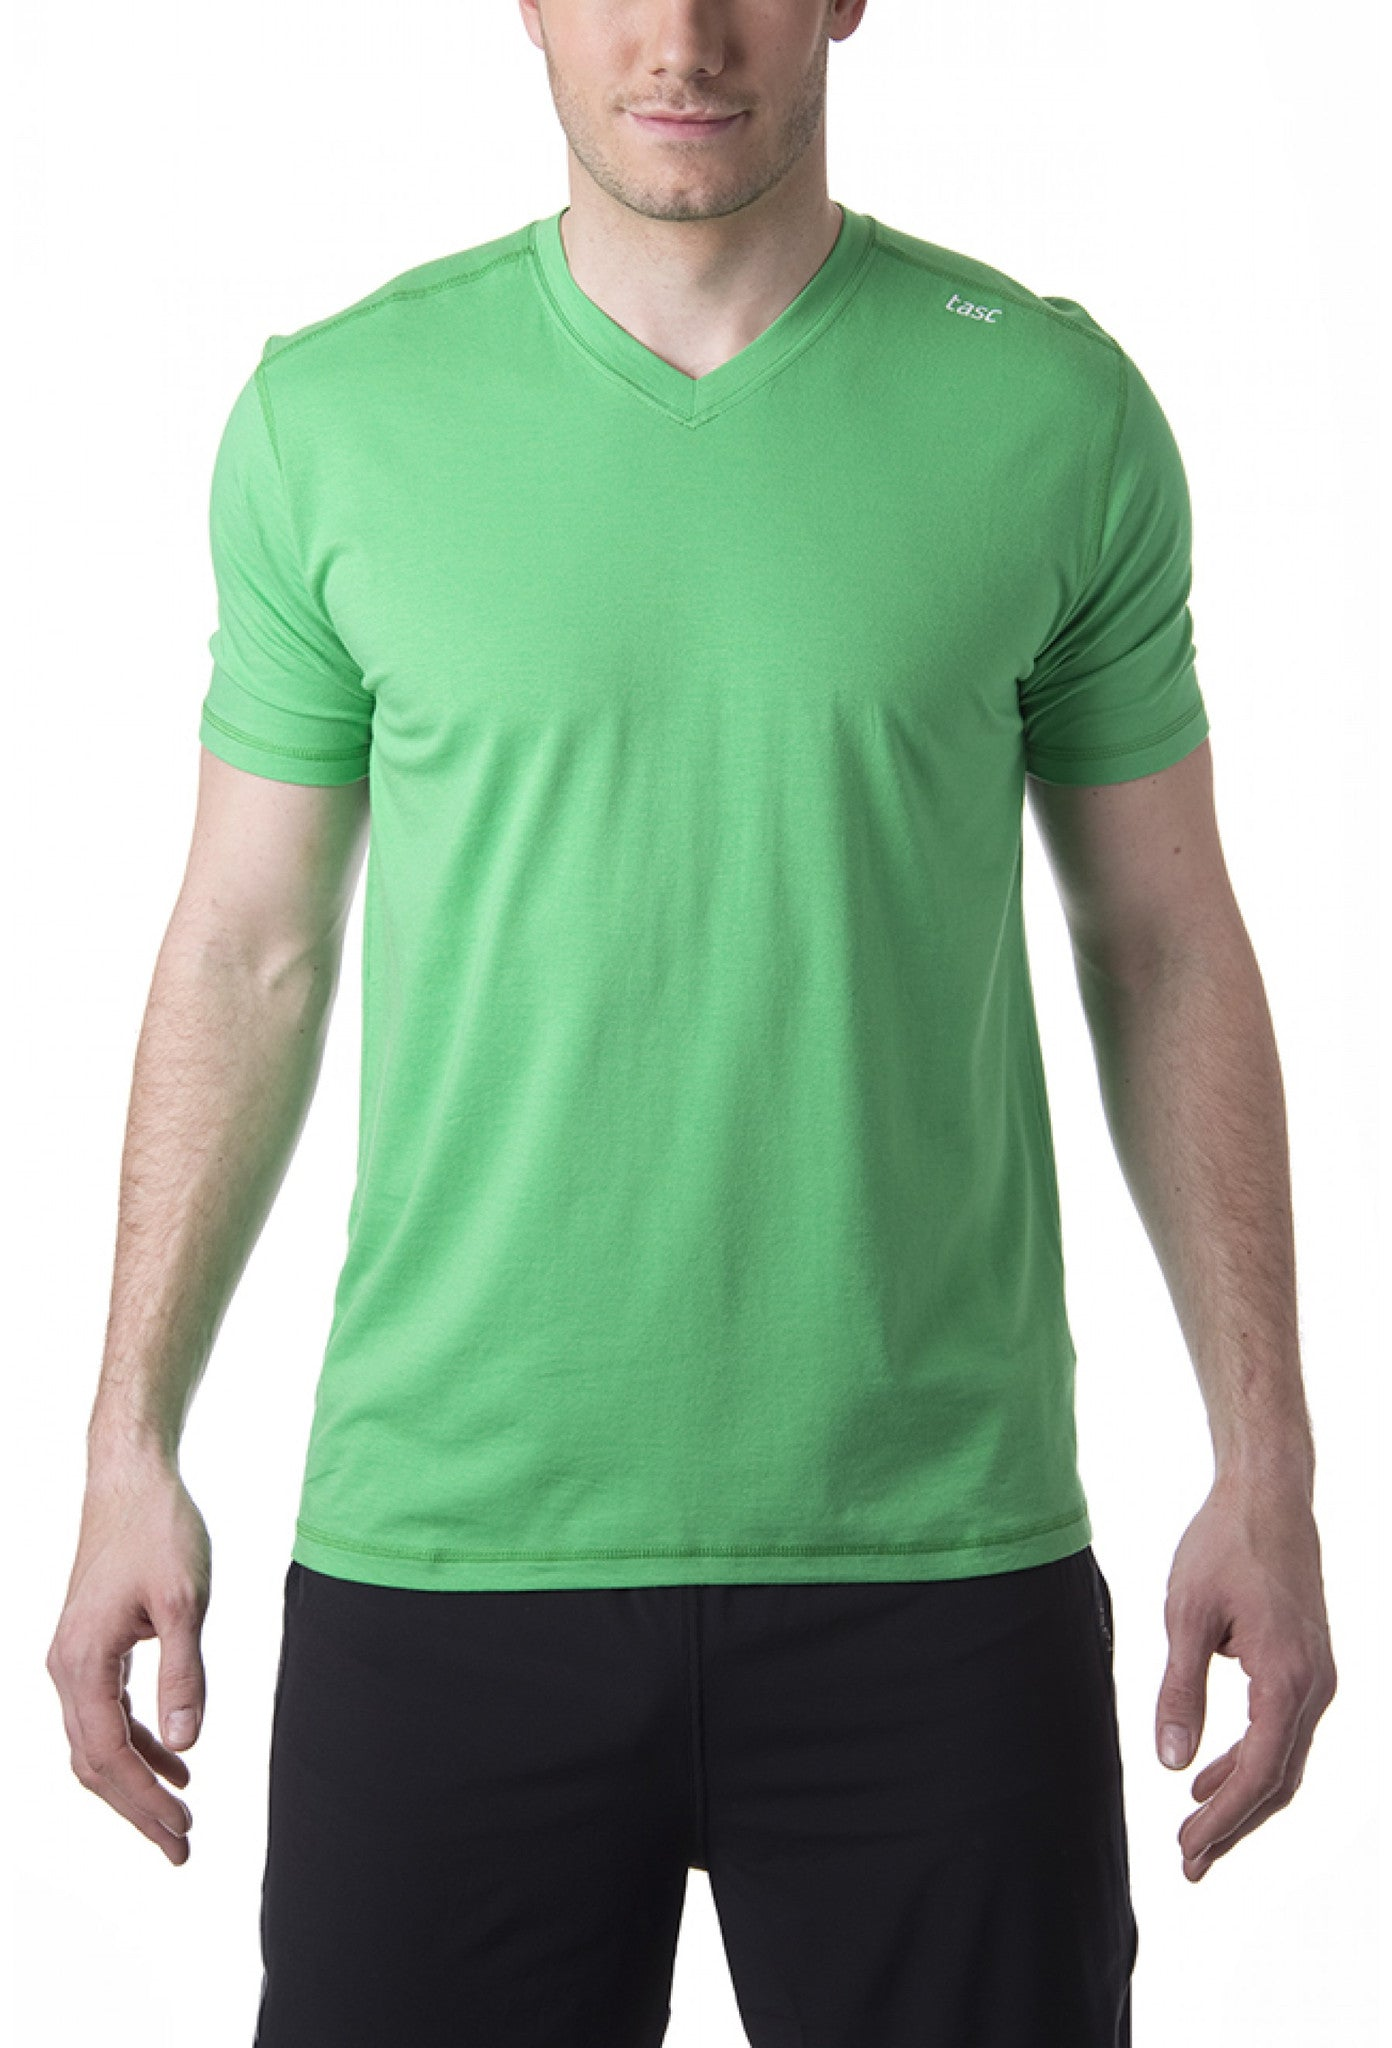 Tasc Performance Vital V-Neck T-M-343